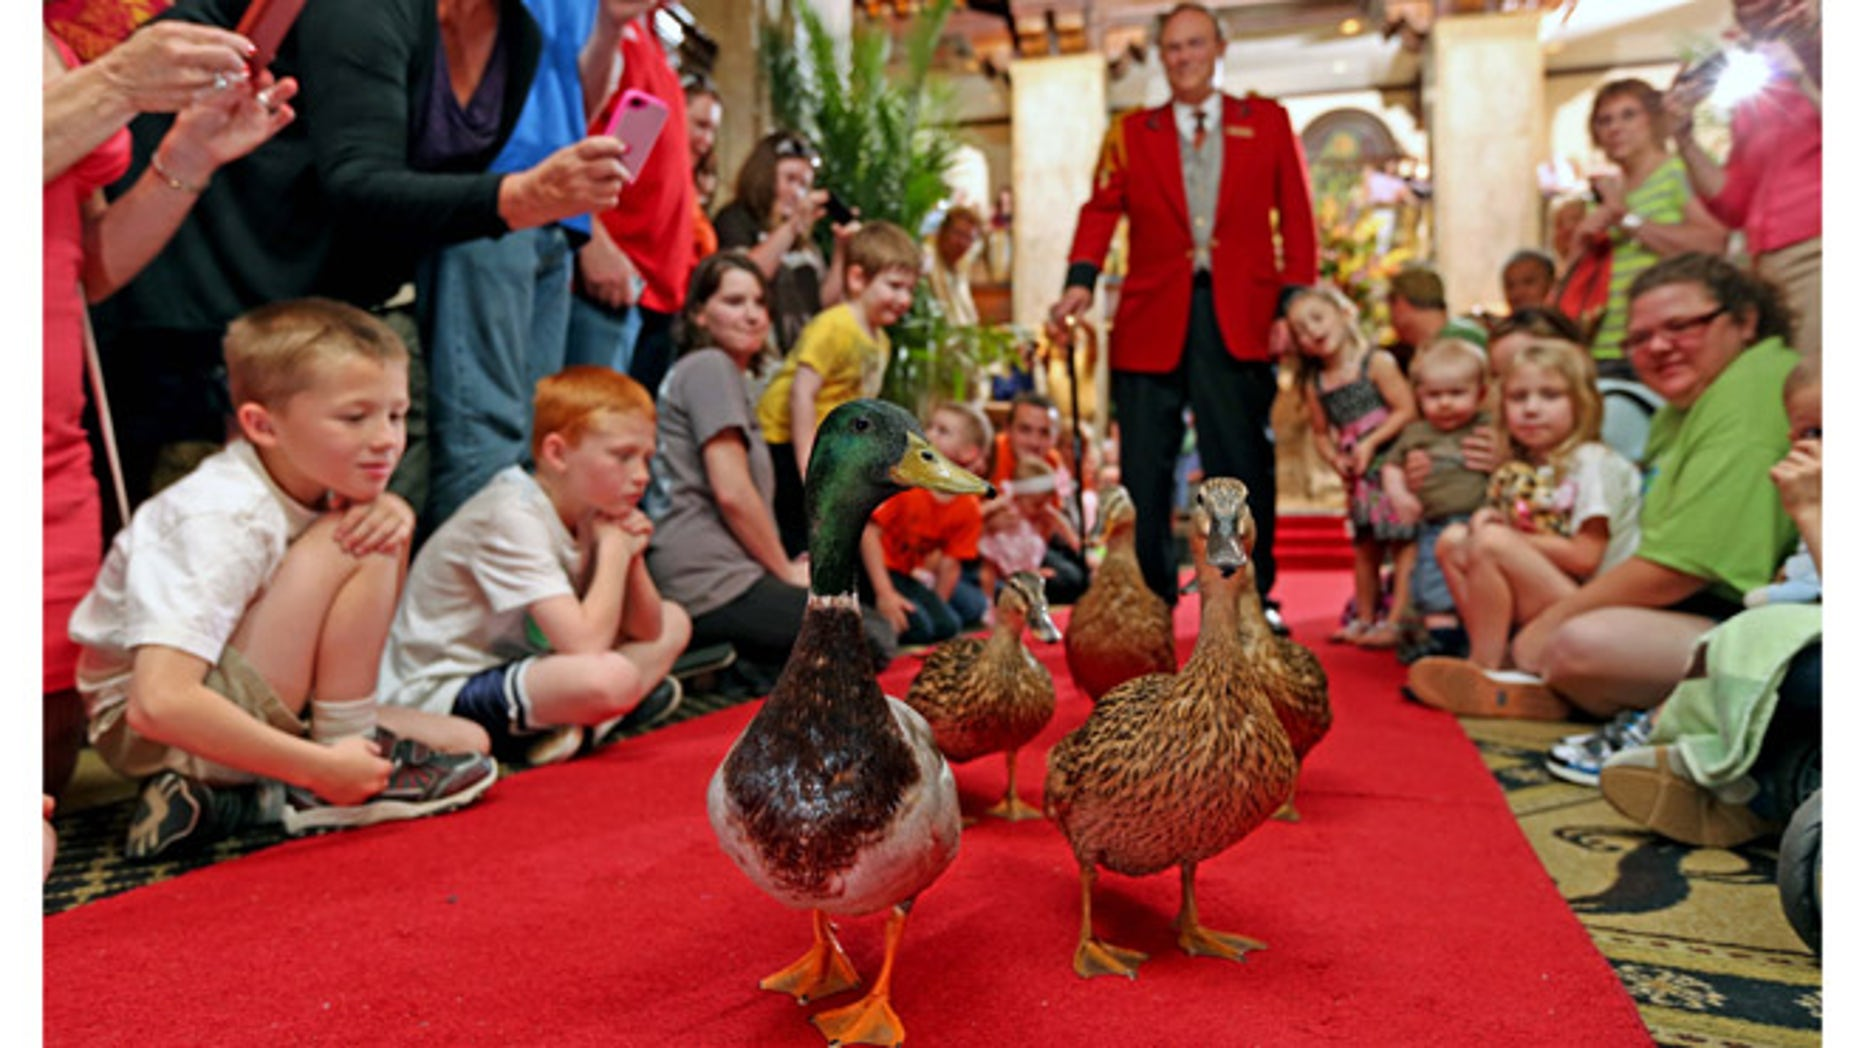 Visitors are welcome to stop by The Peabody Memphis Hotel to watch the ducks parade through the lobby.